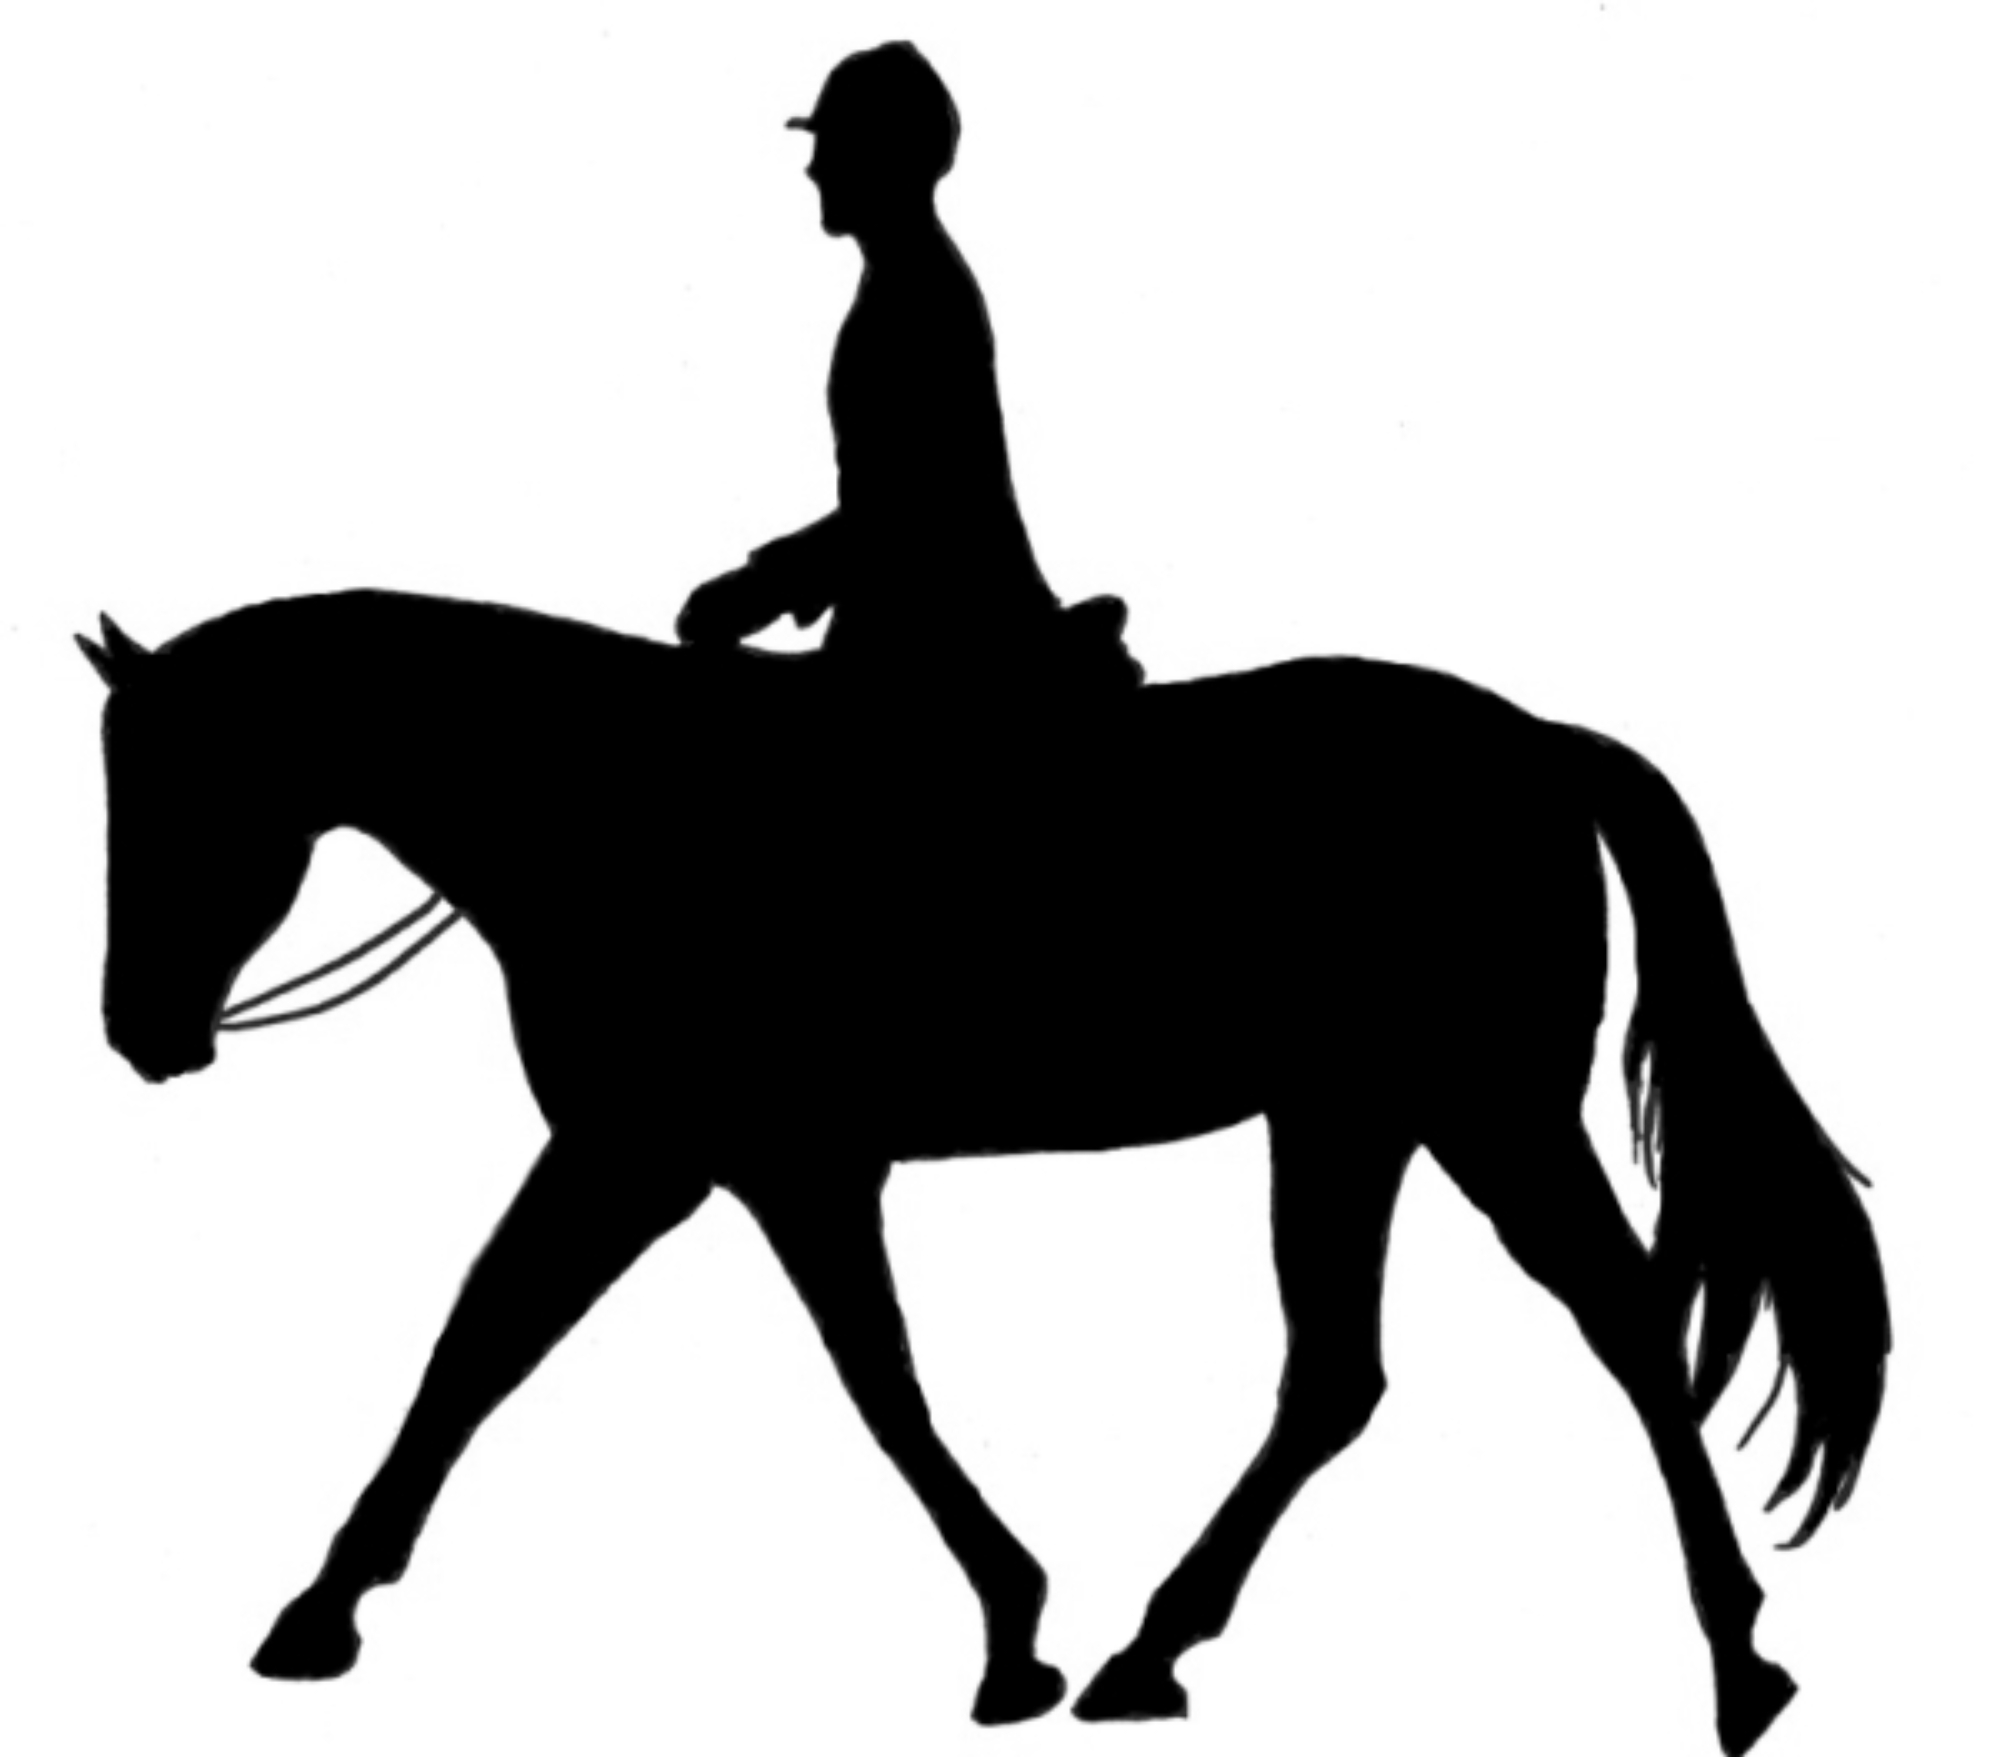 2000x1757 List Of Synonyms And Antonyms Of The Word Horse And Rider Silhouette